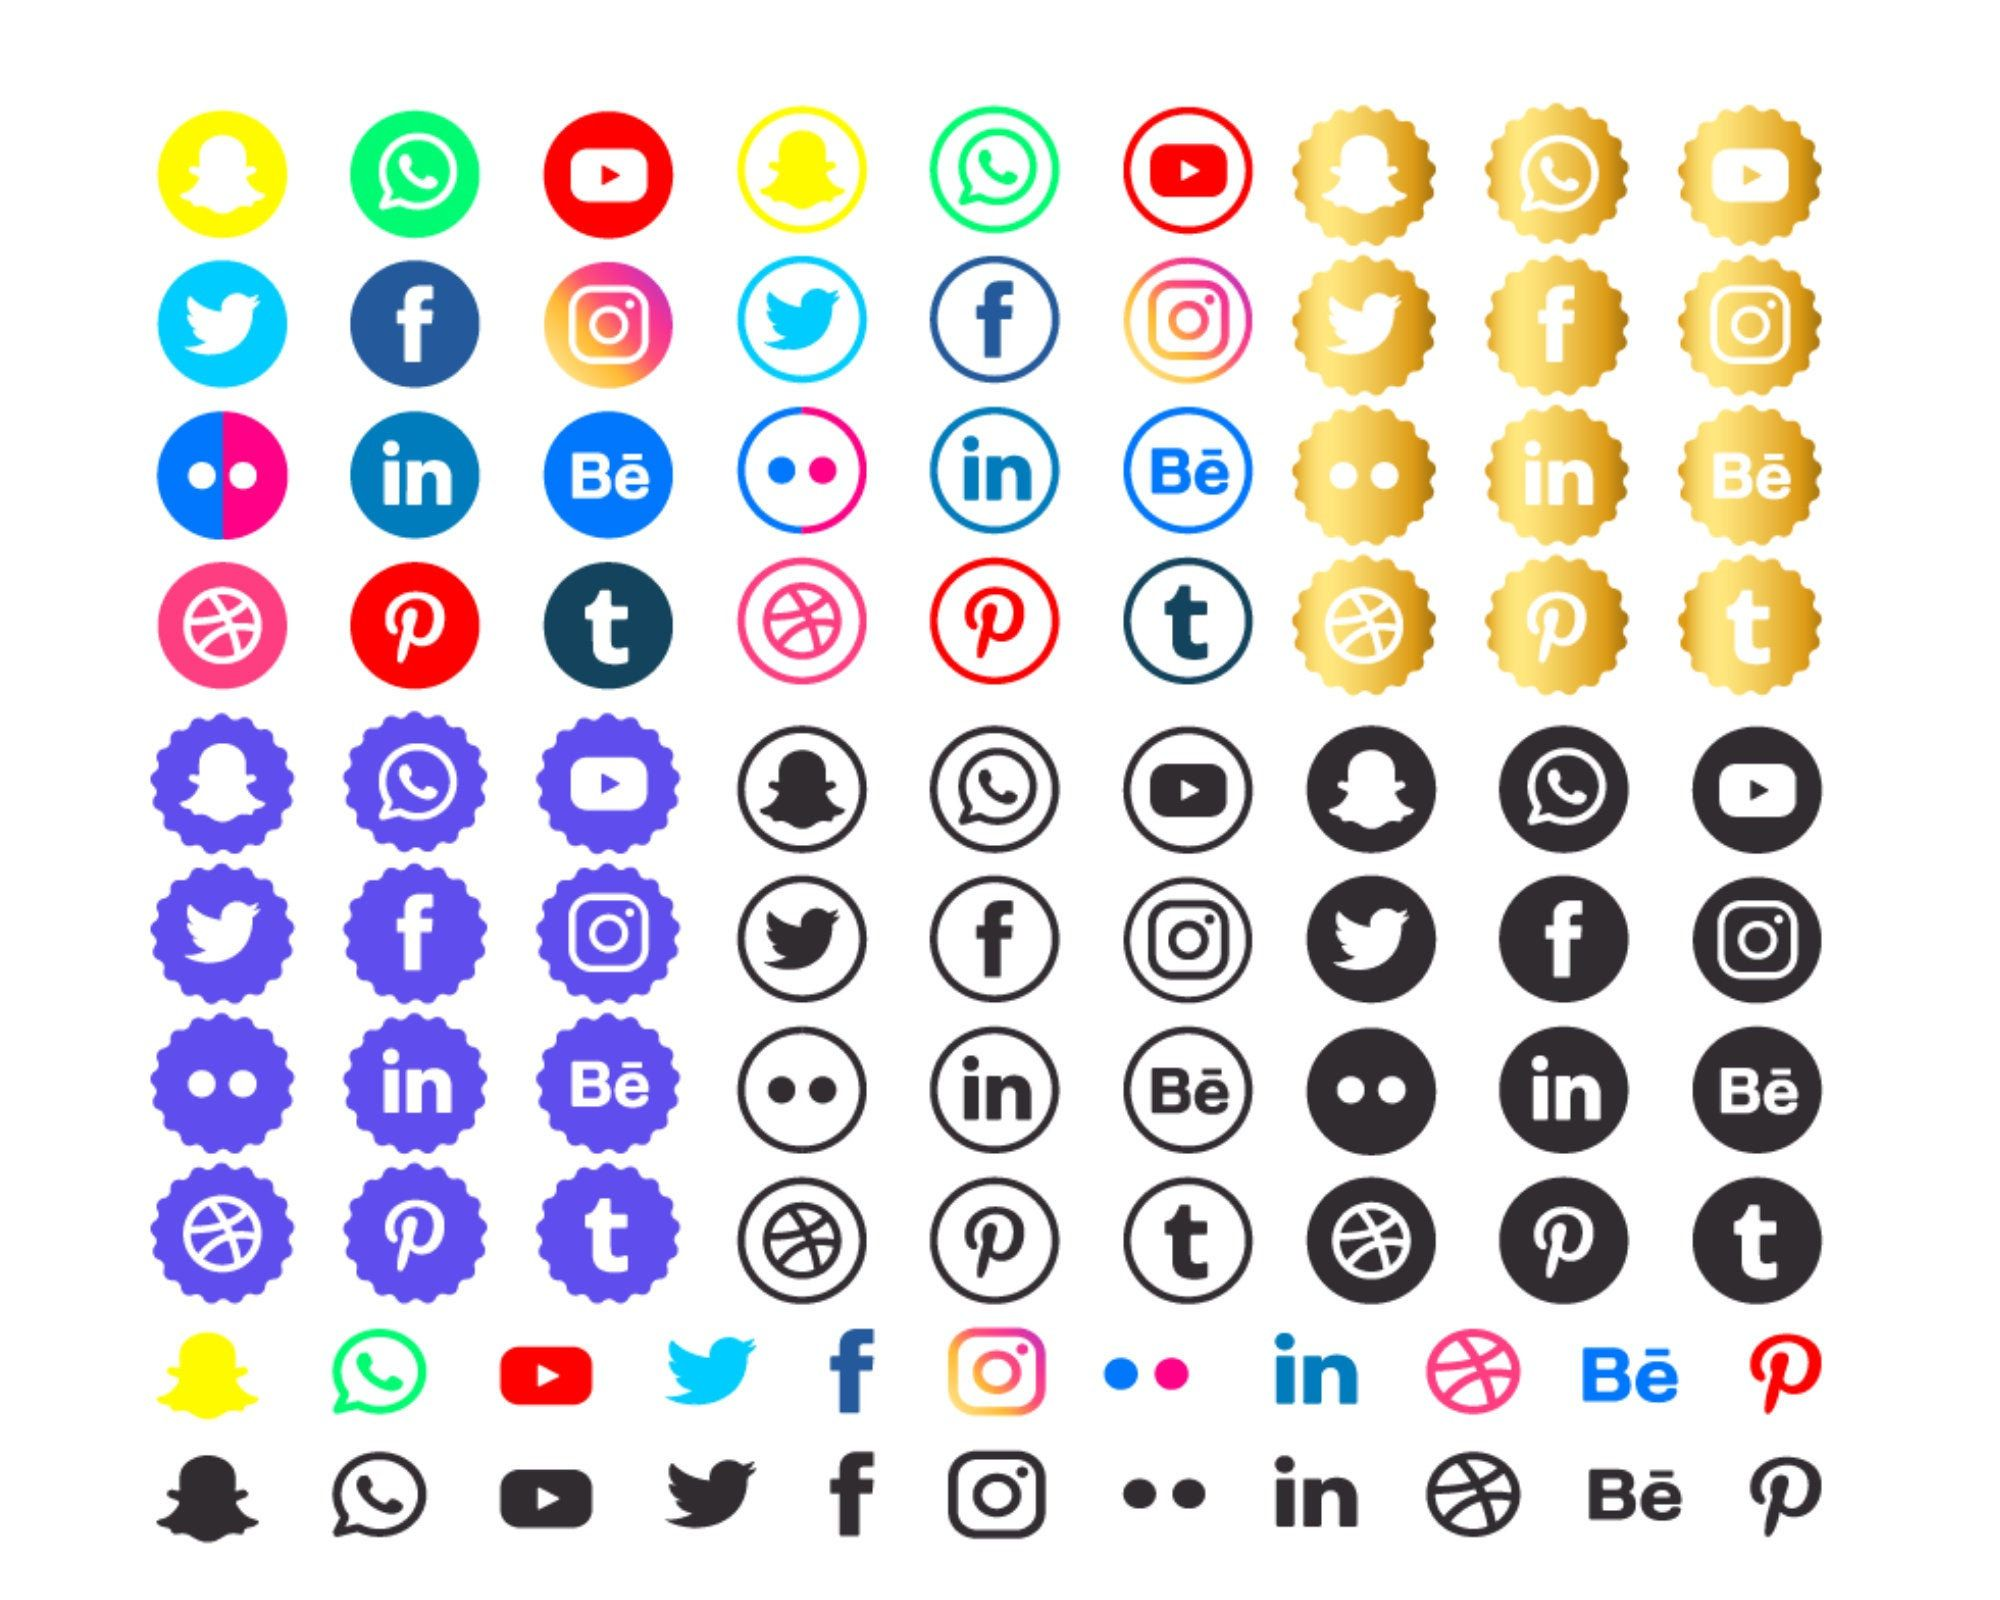 Social Media icon Set & Logo SVG/Ai/EPS Files Instant